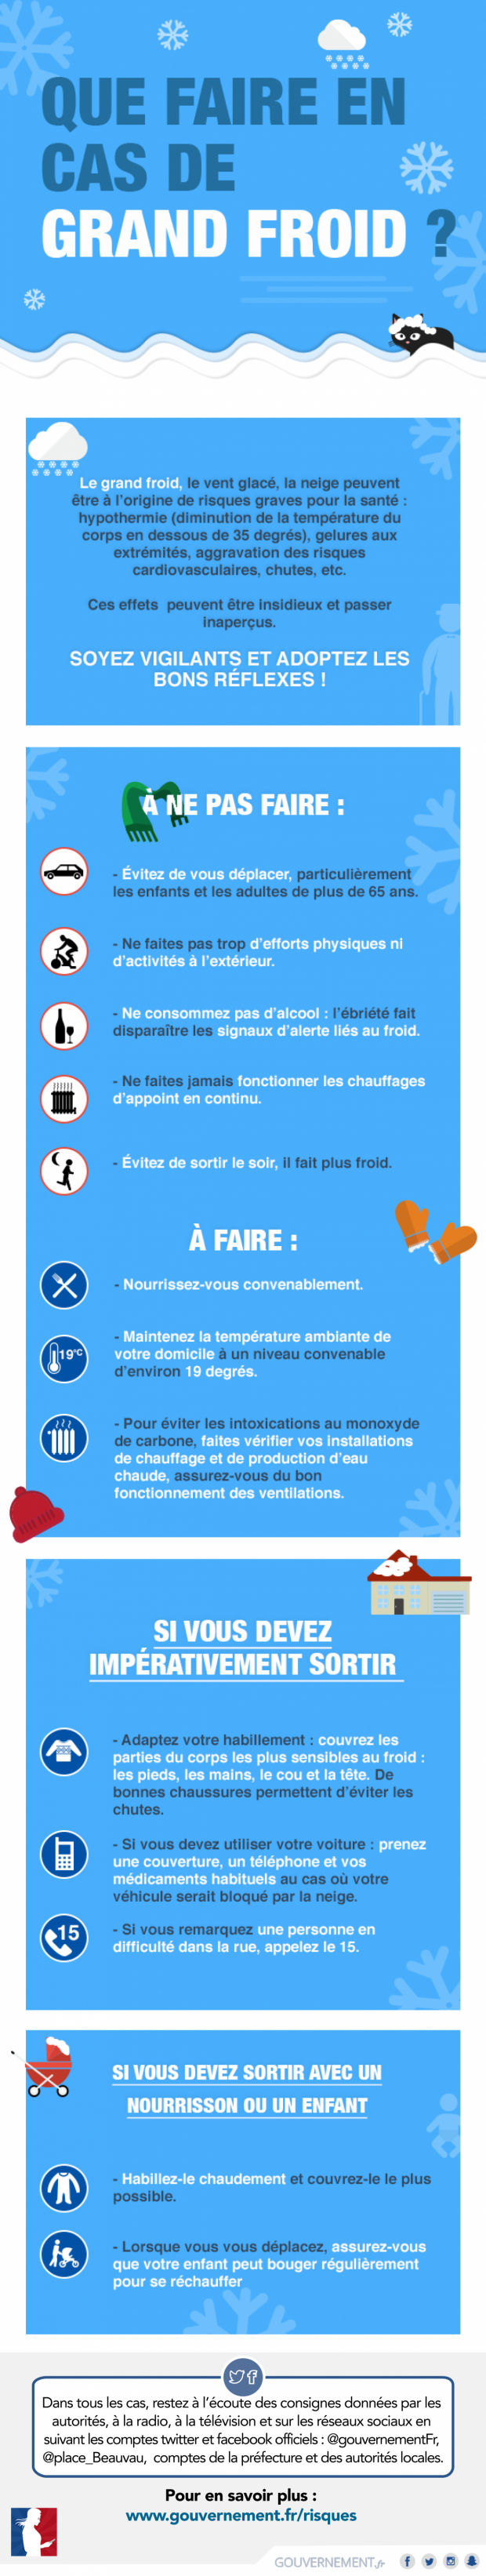 Que faire en cas de grand froid ? - voir en plus grand